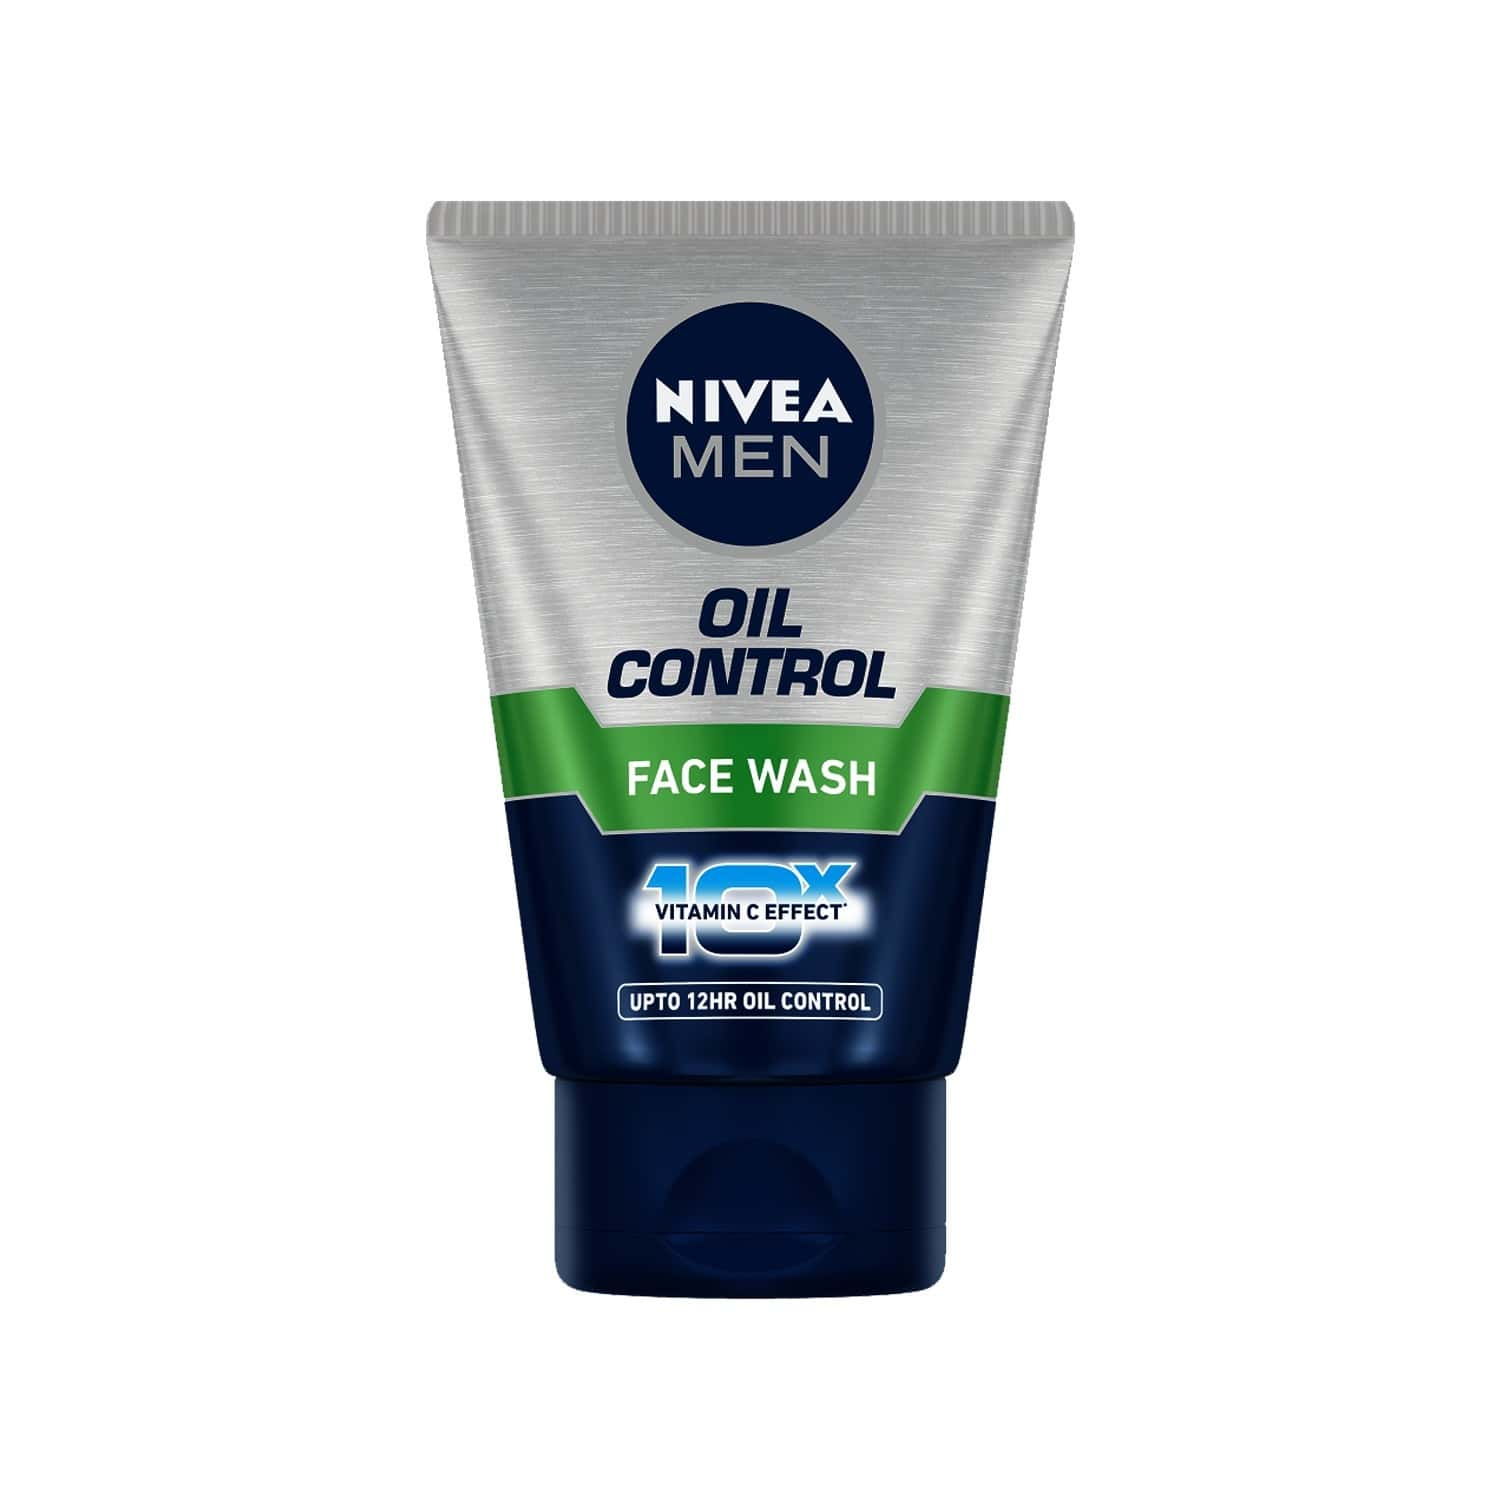 Nivea For Men Acne Oil Control Face Wash Lotion 100g